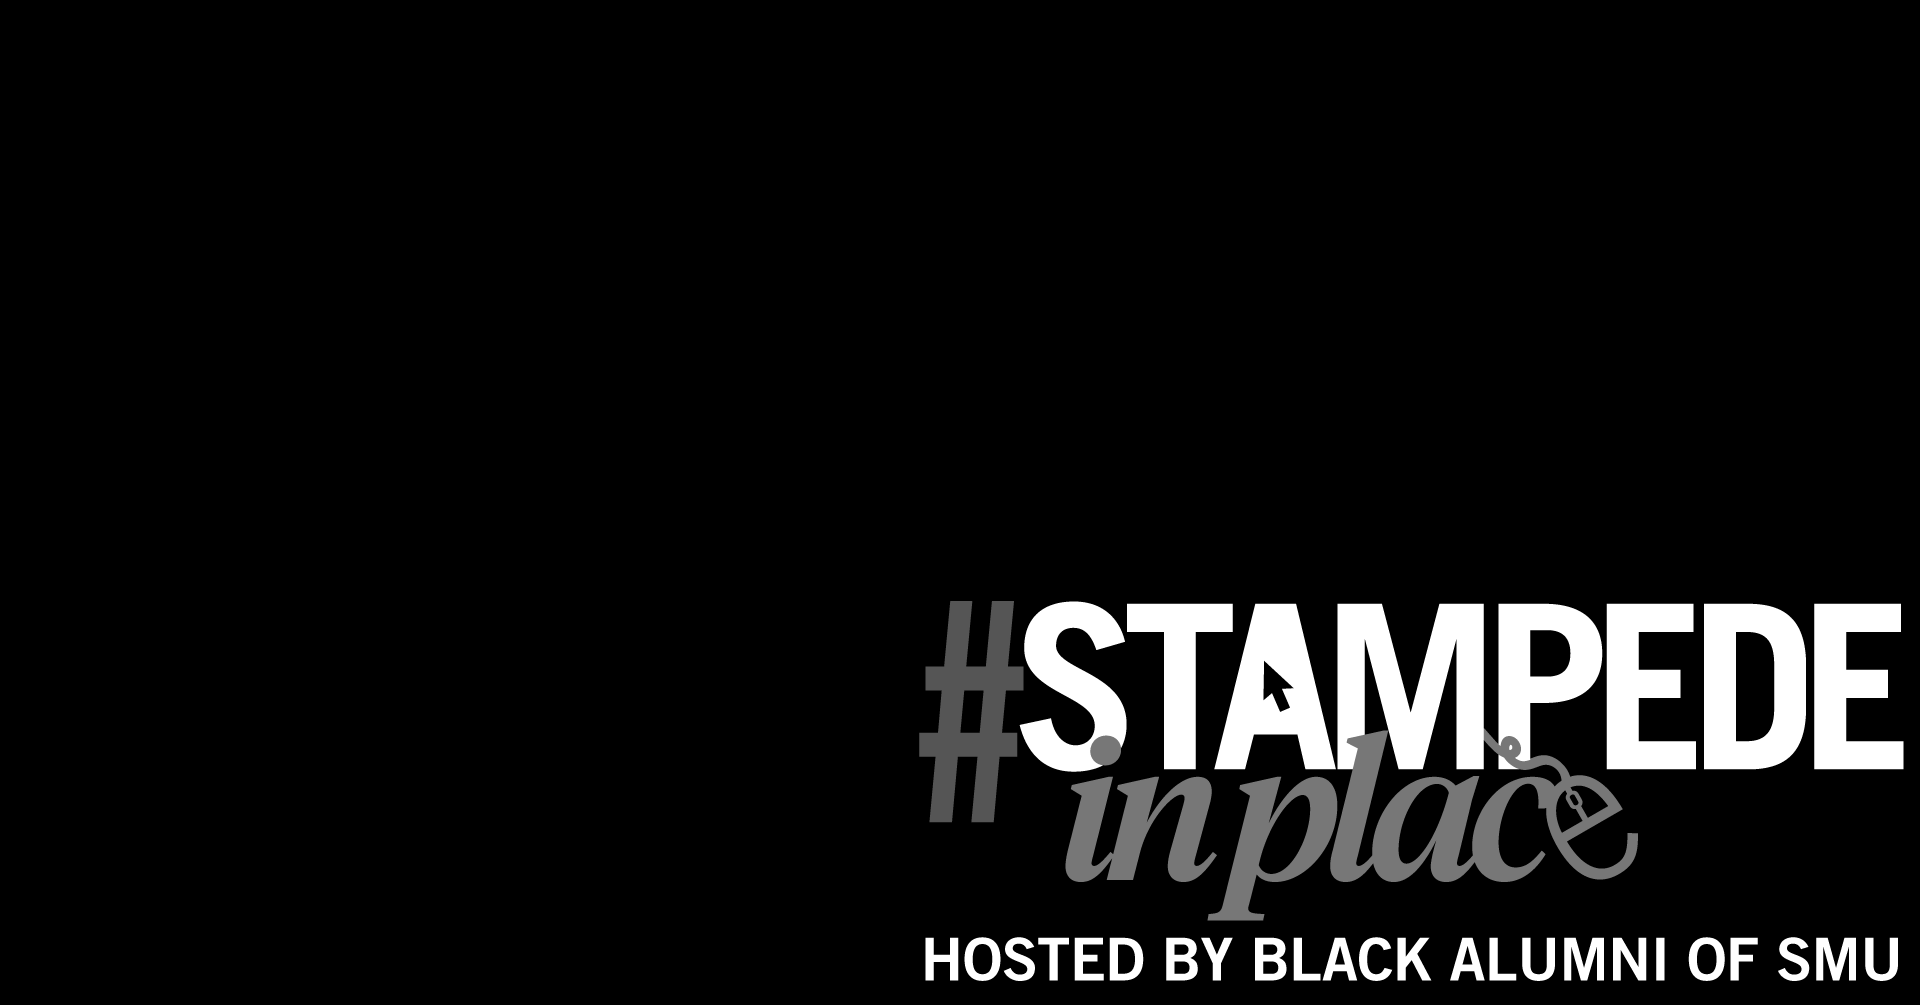 #StampedeInPlace hosted by Black Alumni of SMU